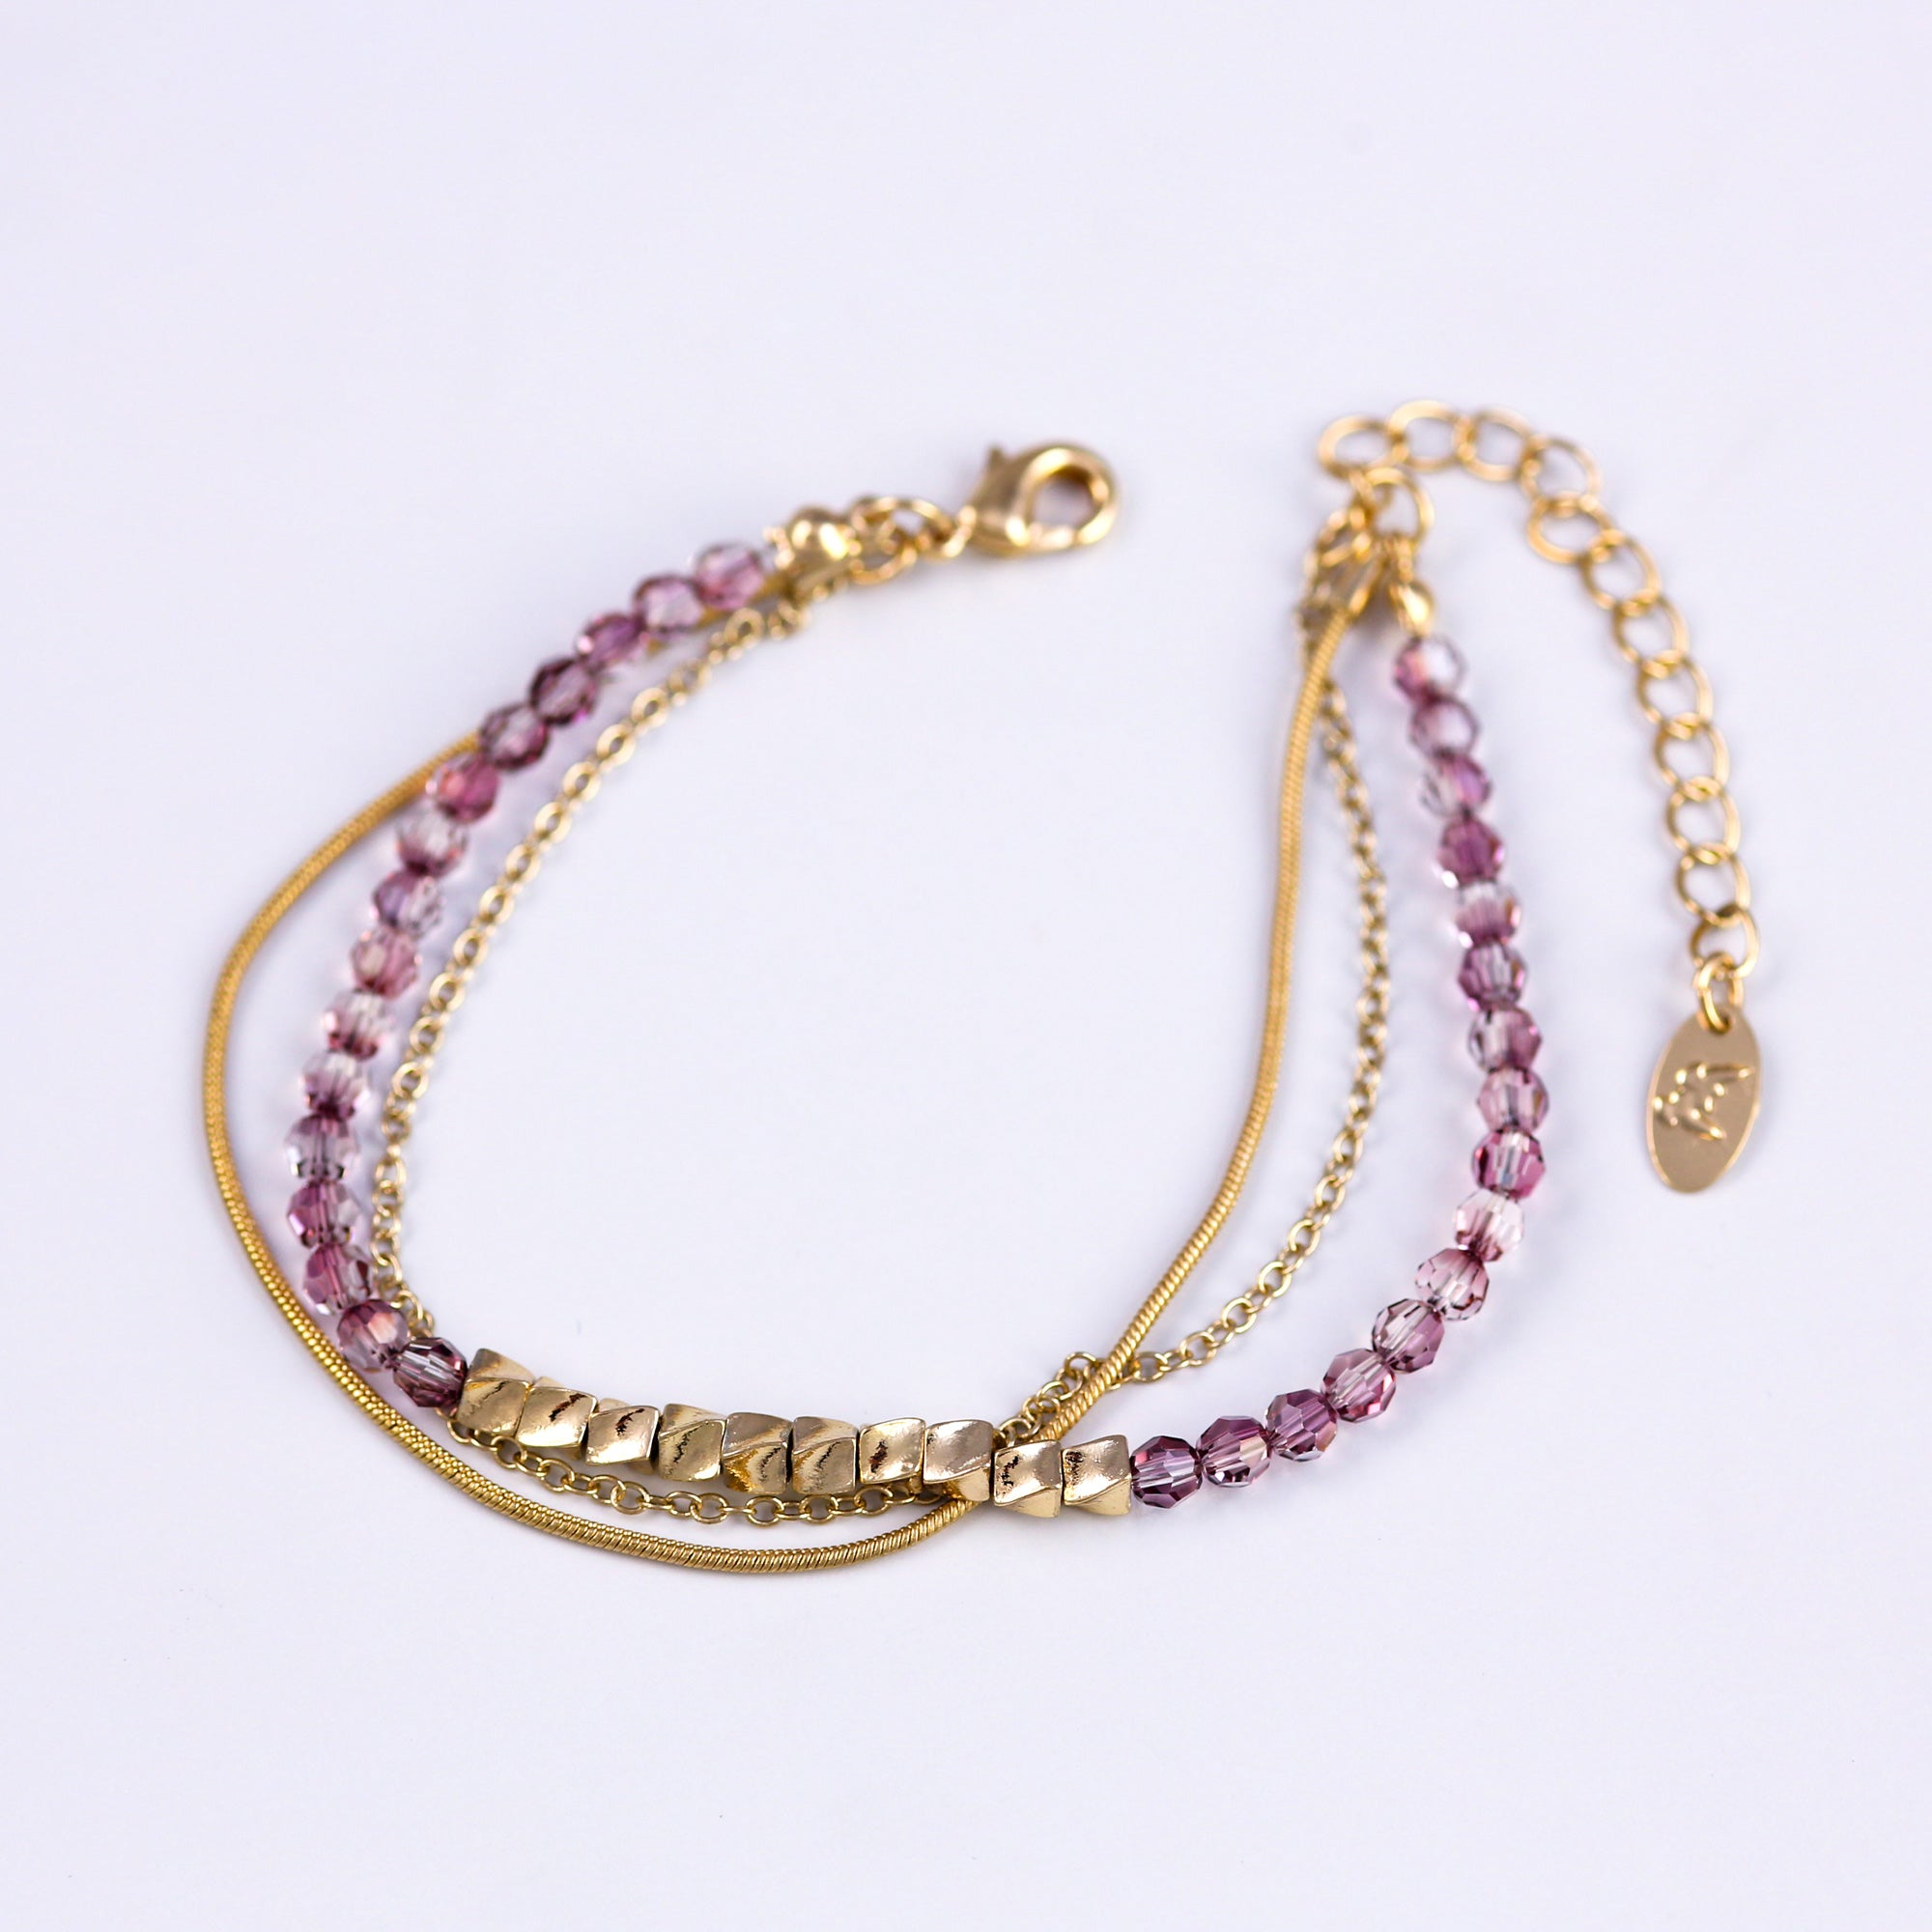 Three Chain Bead Bracelet Gold & Crystal Lilac Shadow